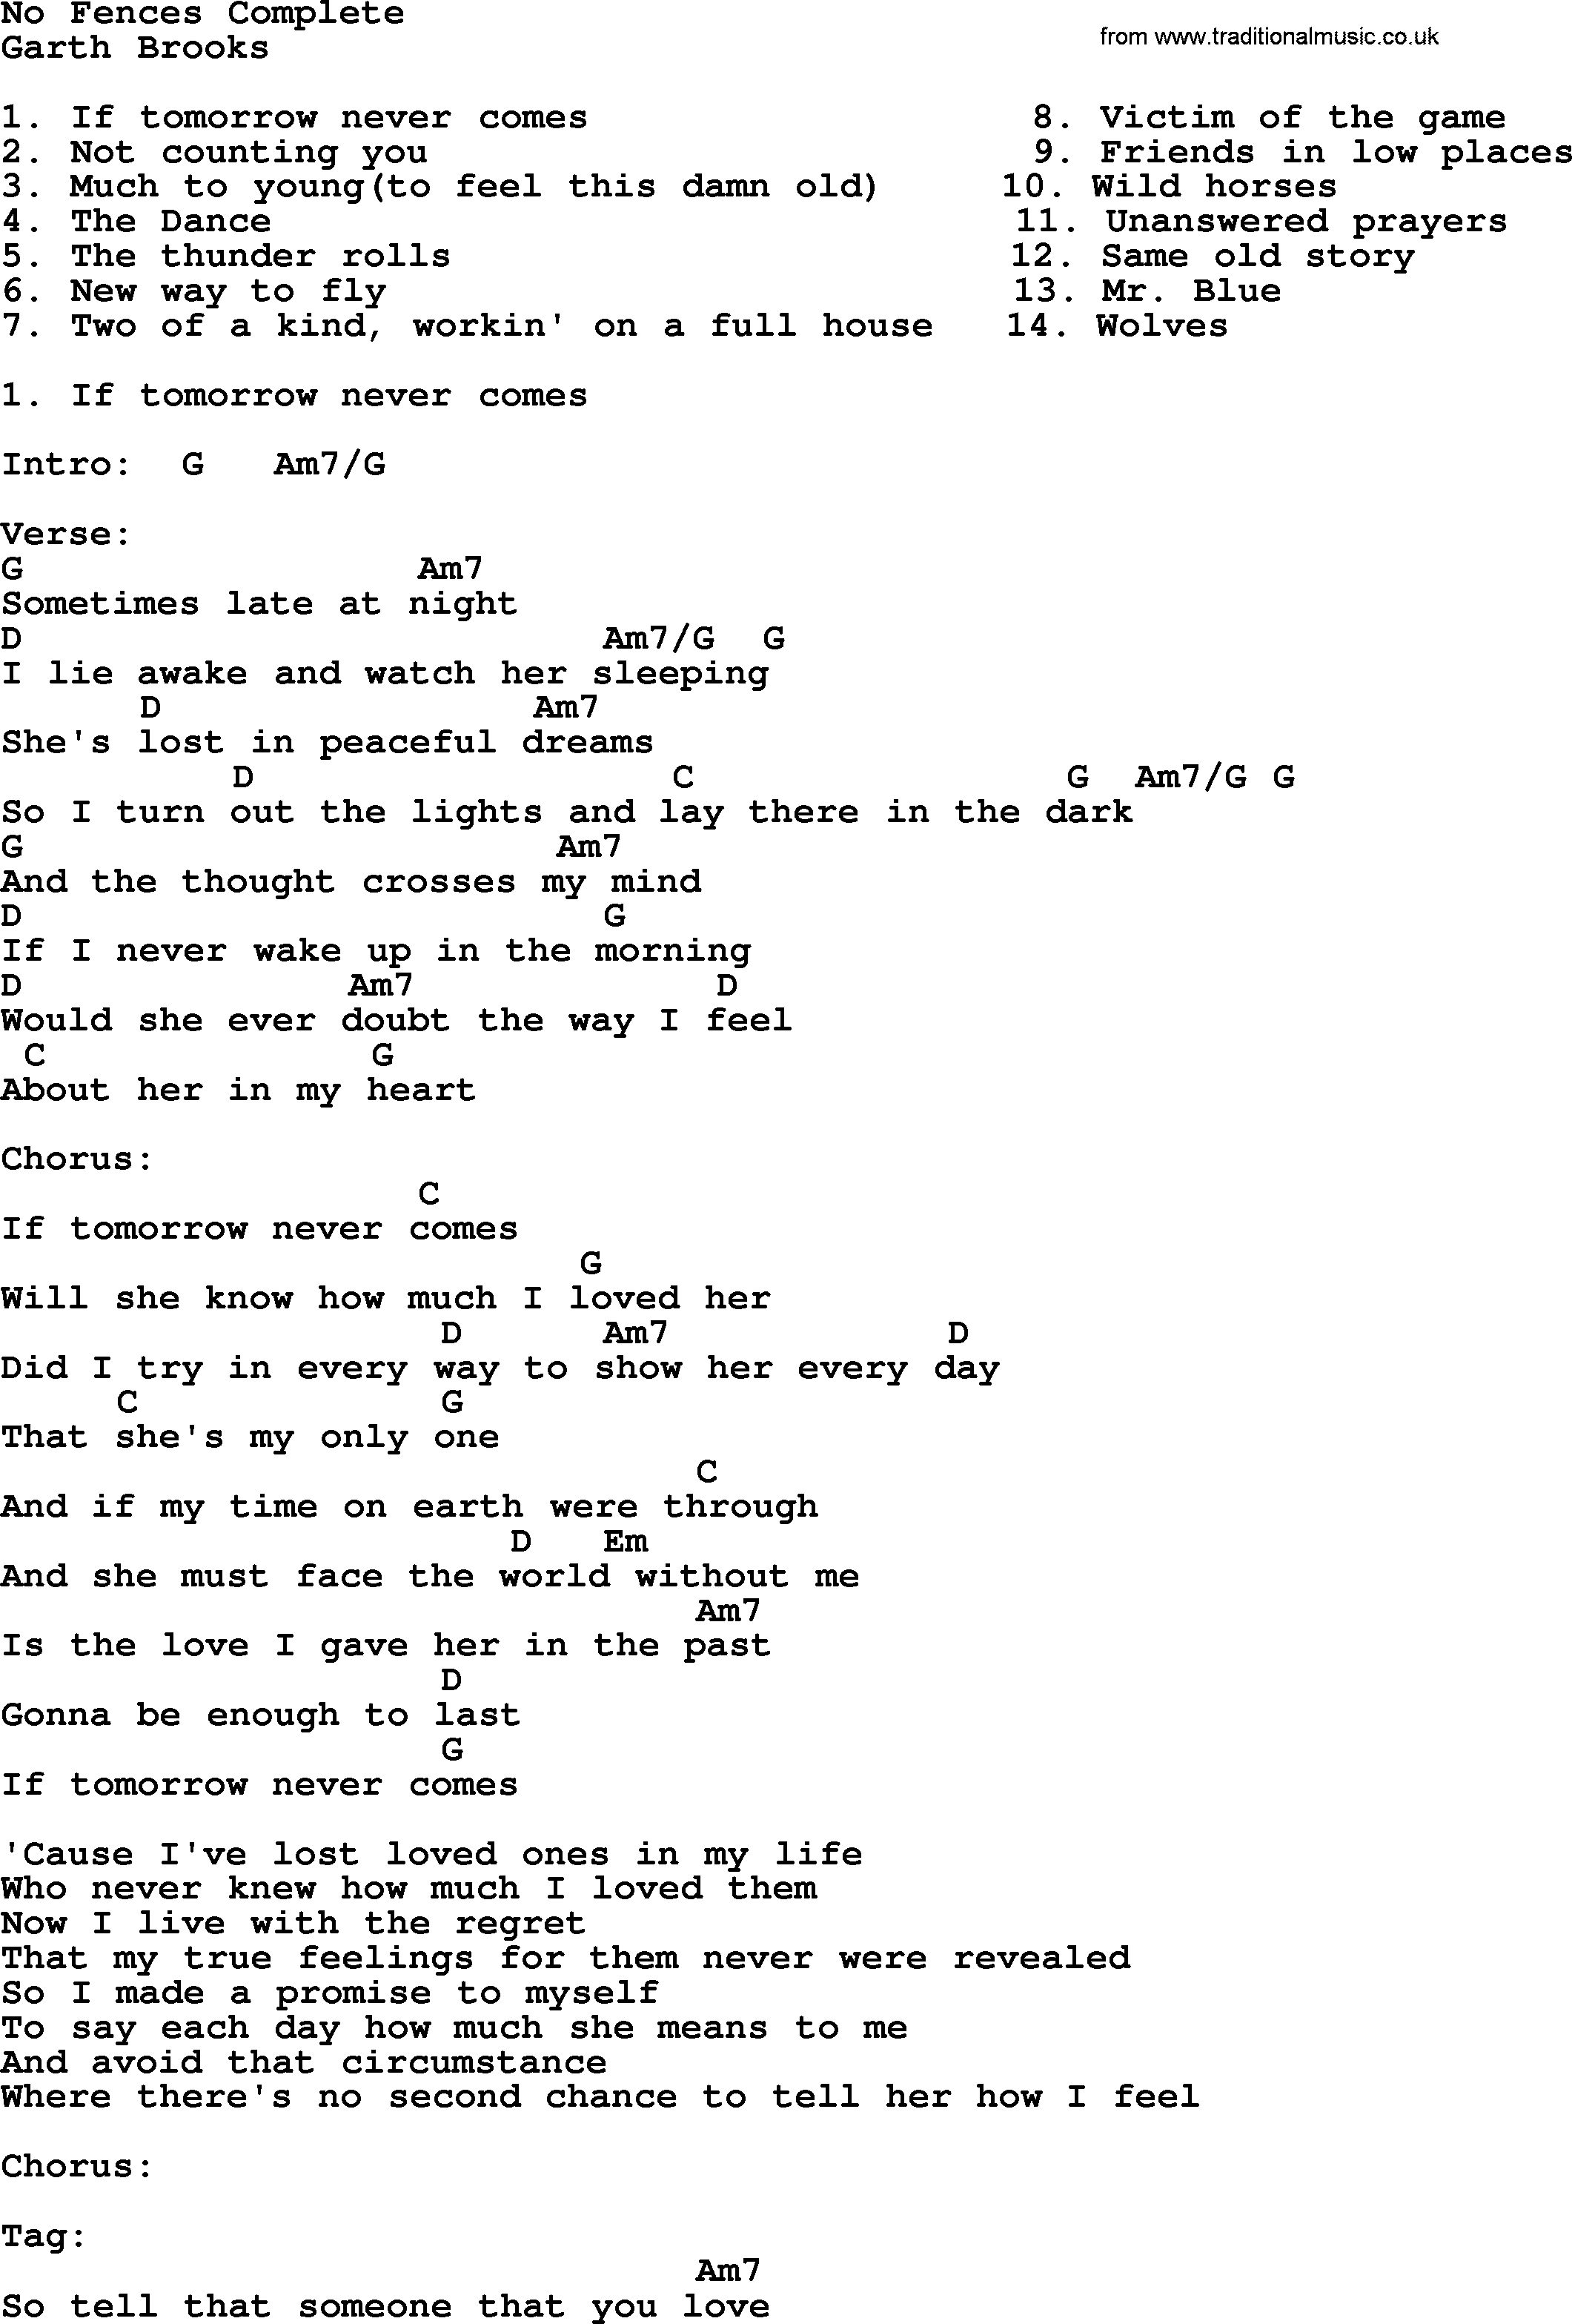 Friends In Low Places Chords No Fences Complete Garth Brooks Lyrics And Chords